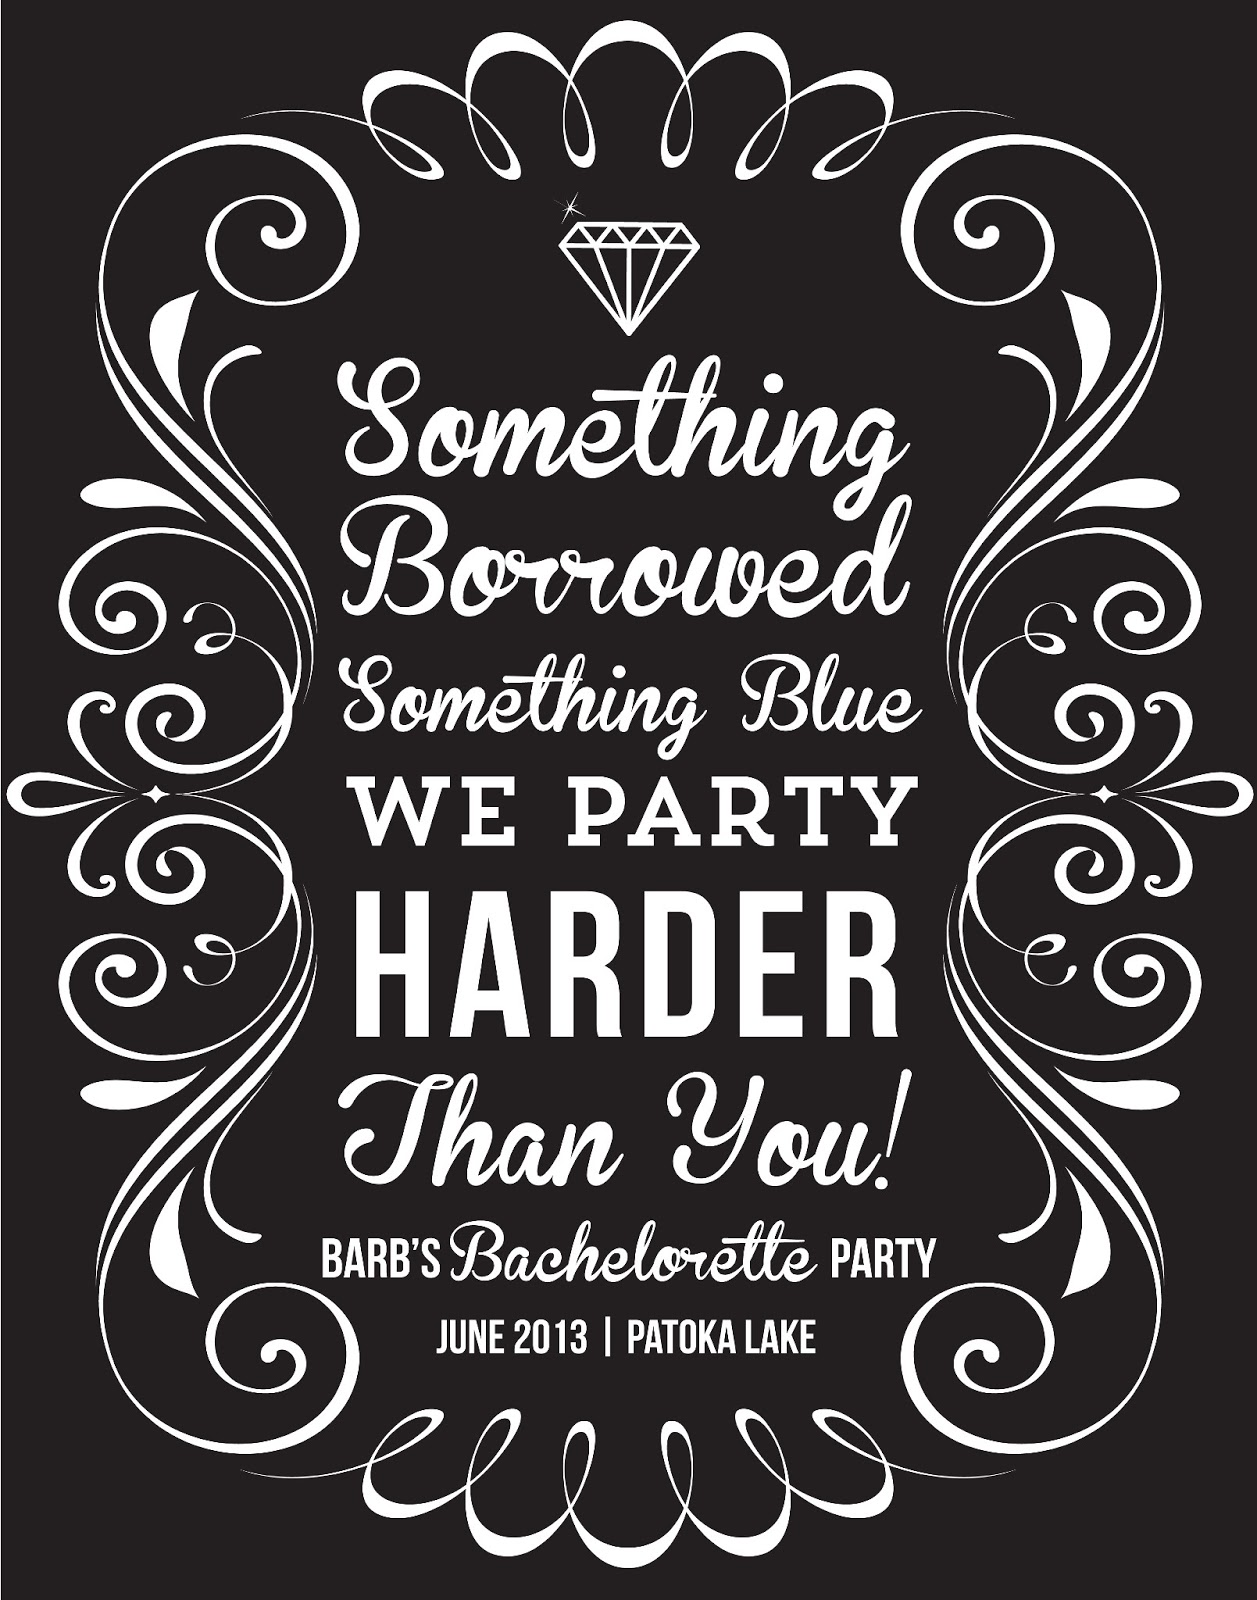 Bachelor Party Invitation Quotes with adorable invitation layout